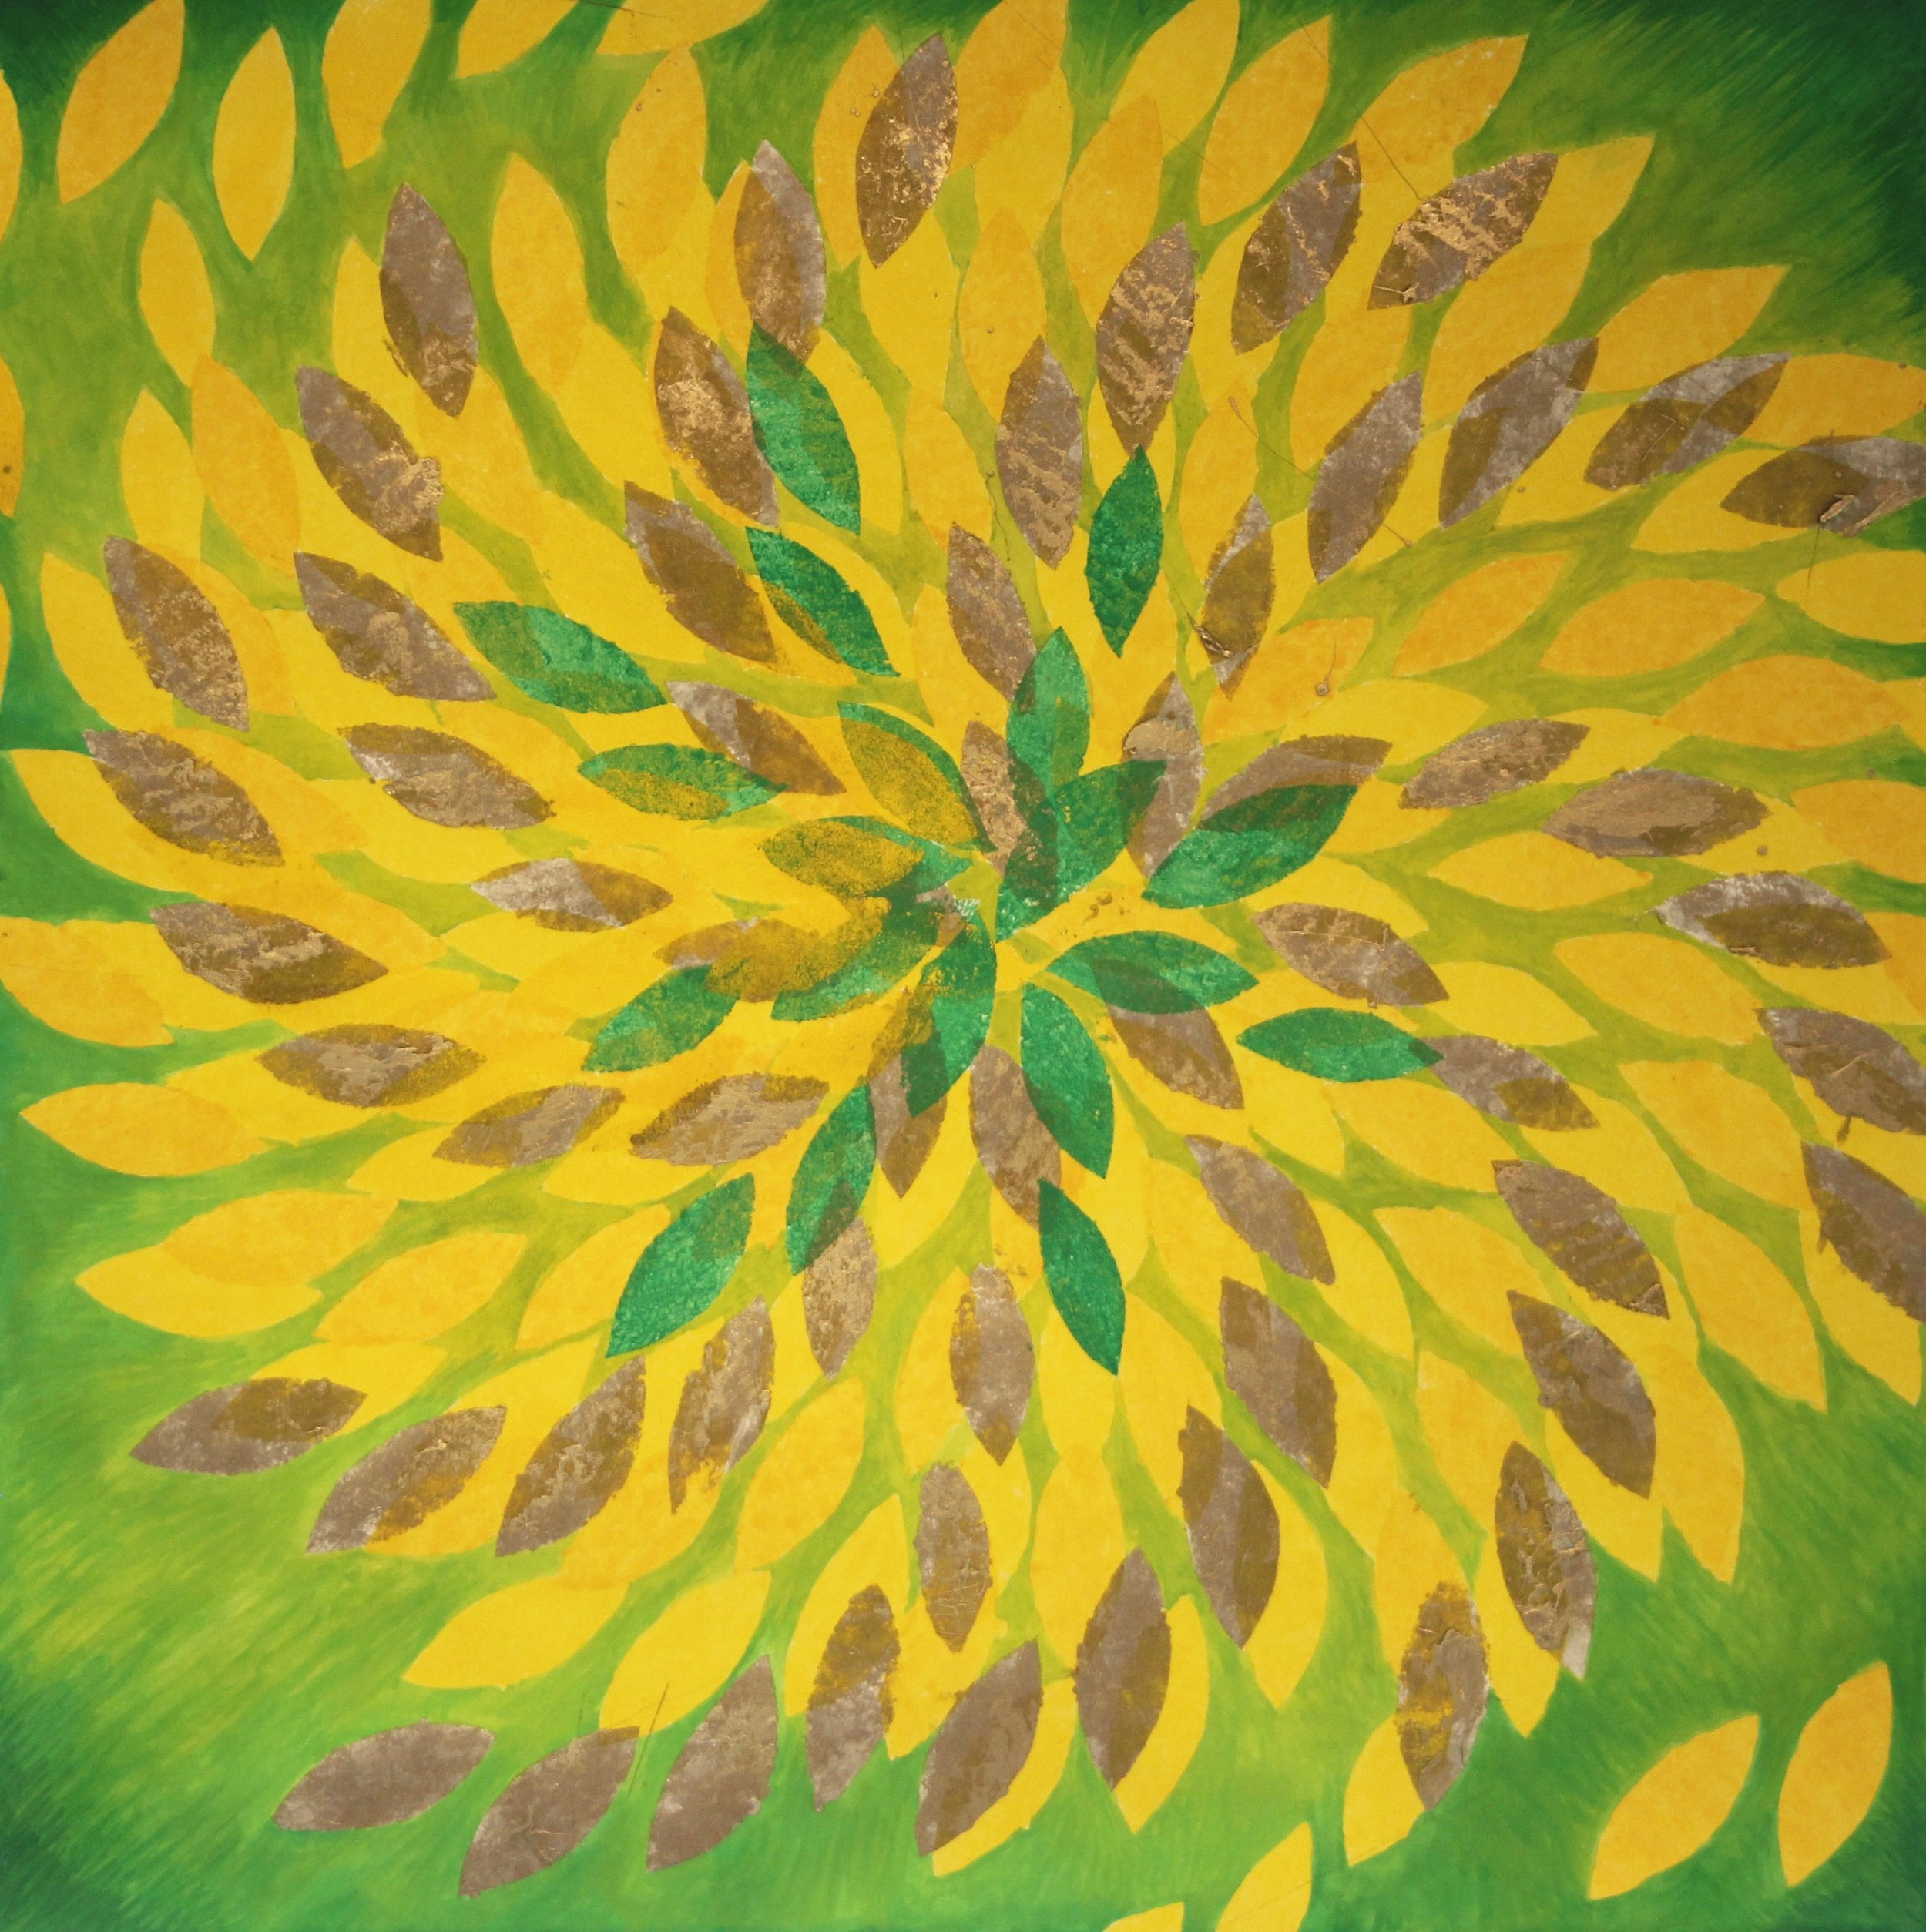 Sunflower 1 by Barbara Thomas,  mixed media on paper, 22 x 22 in, $1,800